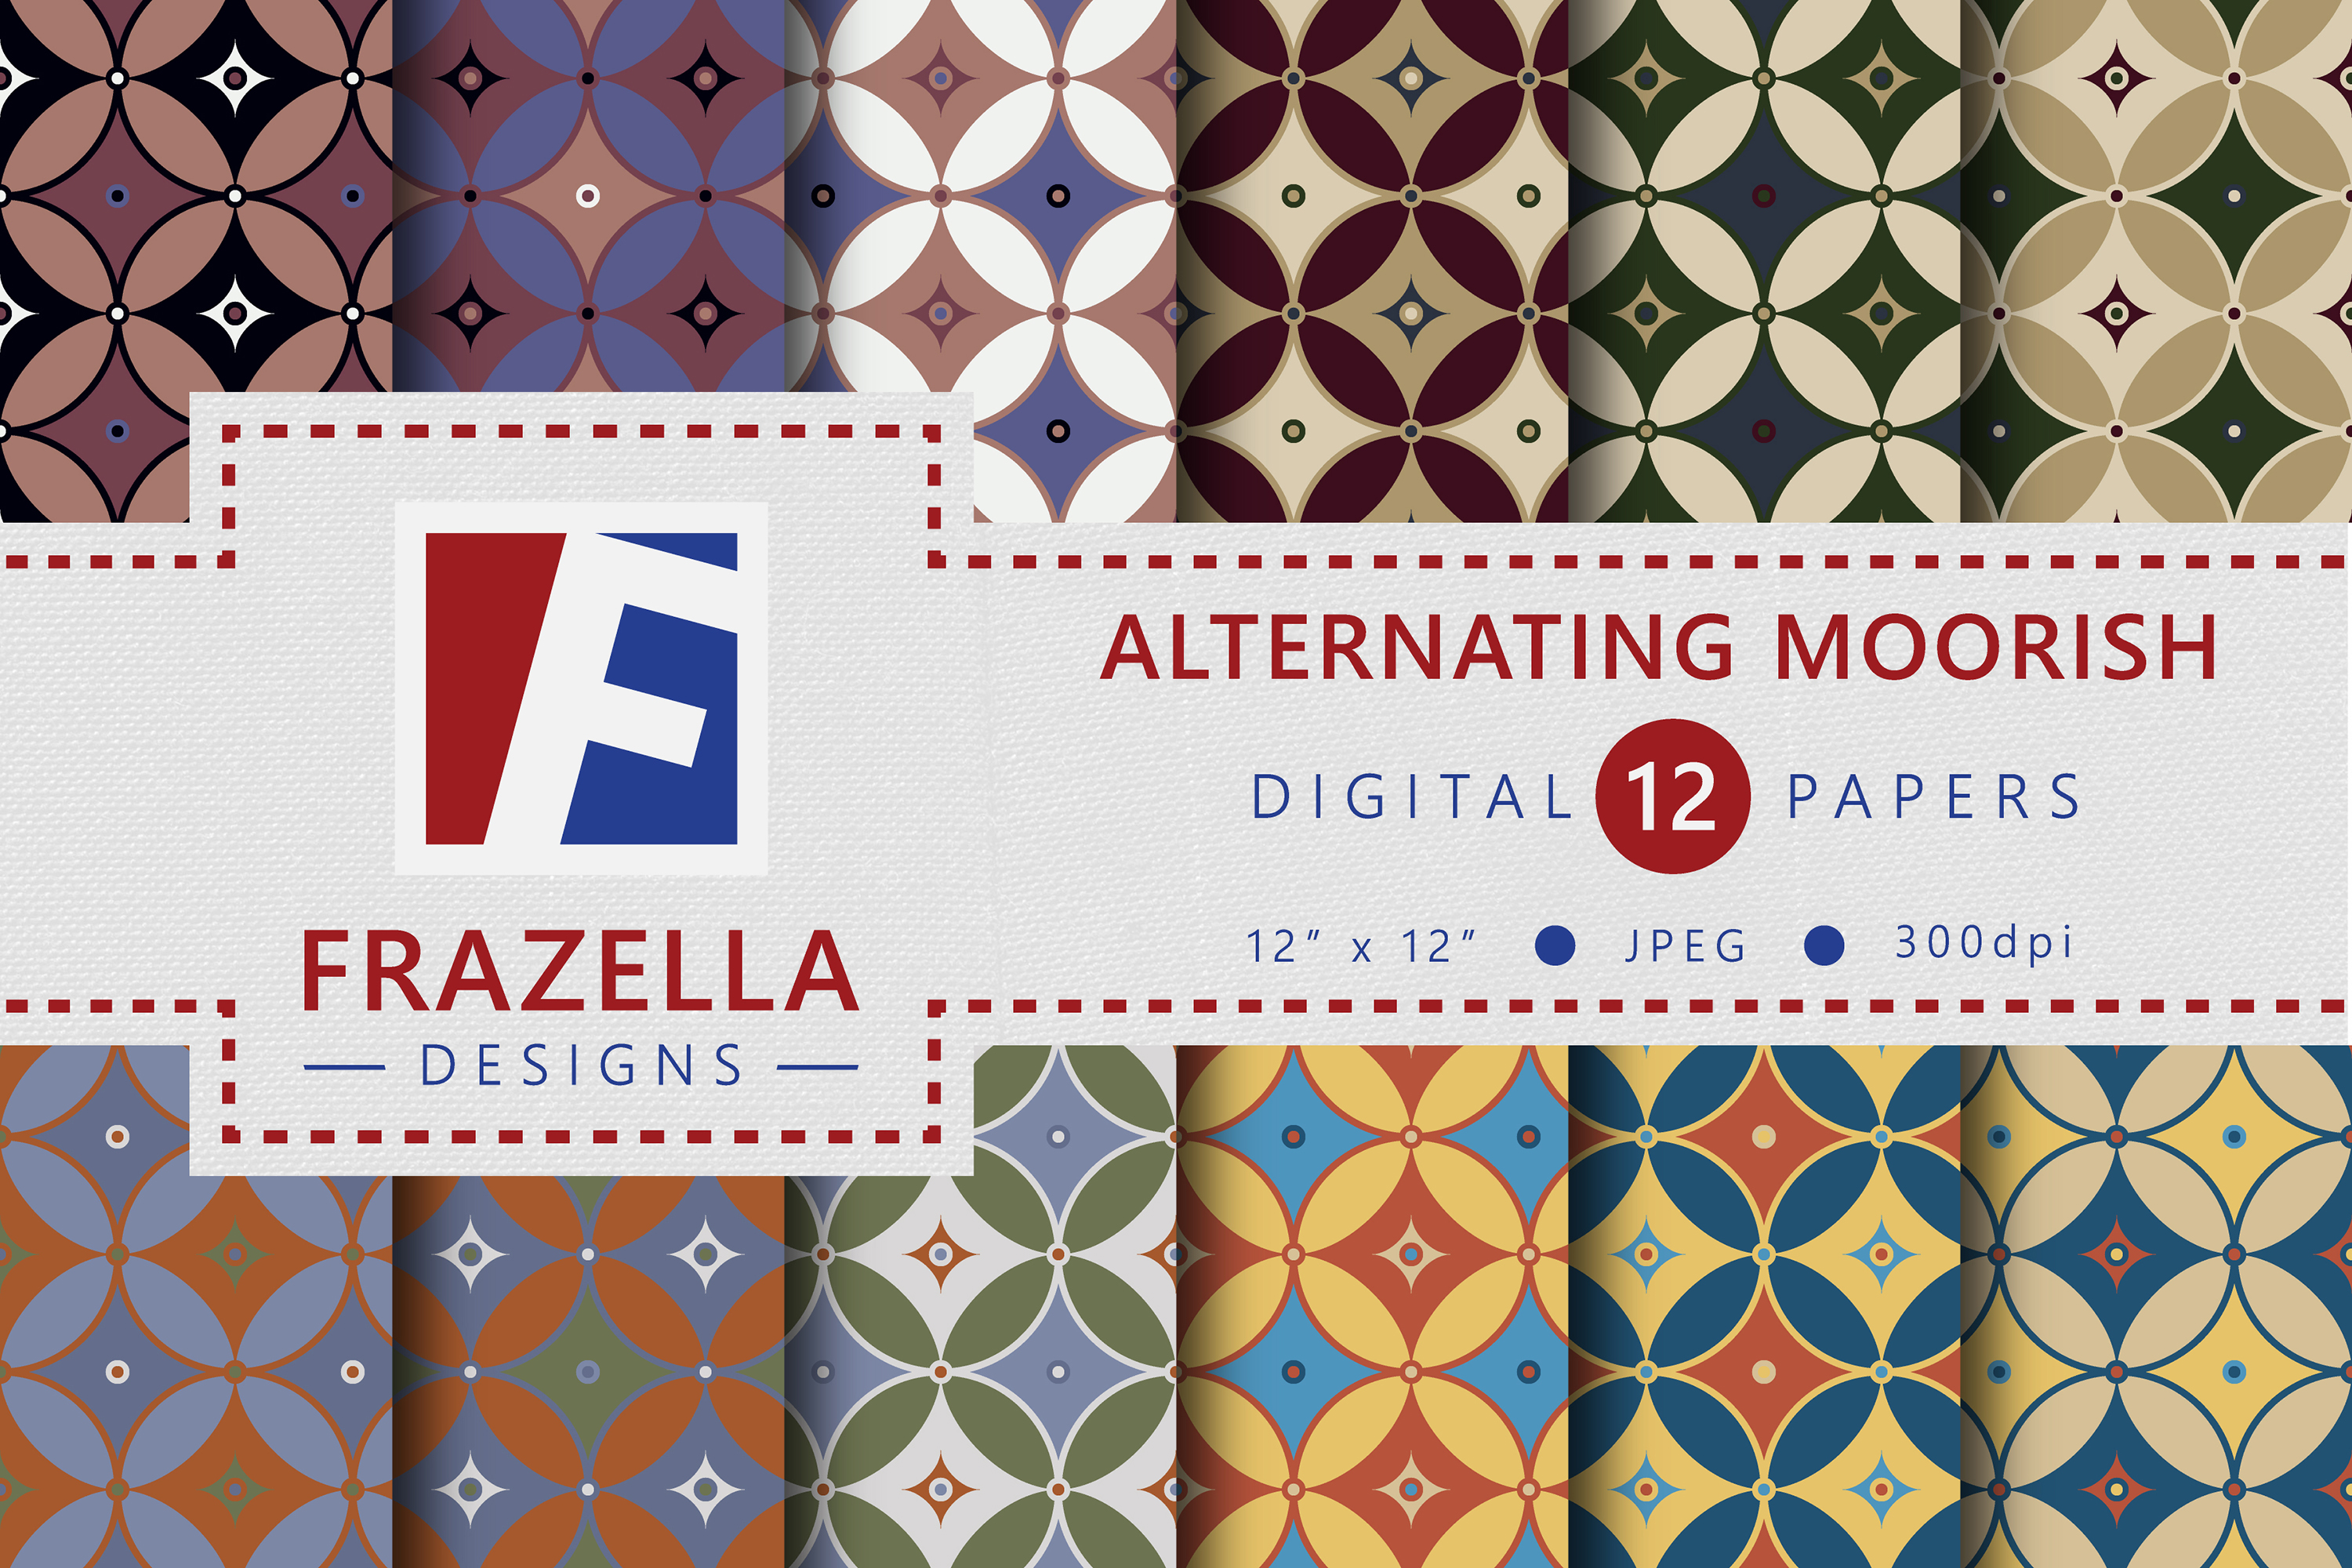 The ULTIMATE Digital Paper Collection Retro Edition Vol. 3. example image 2